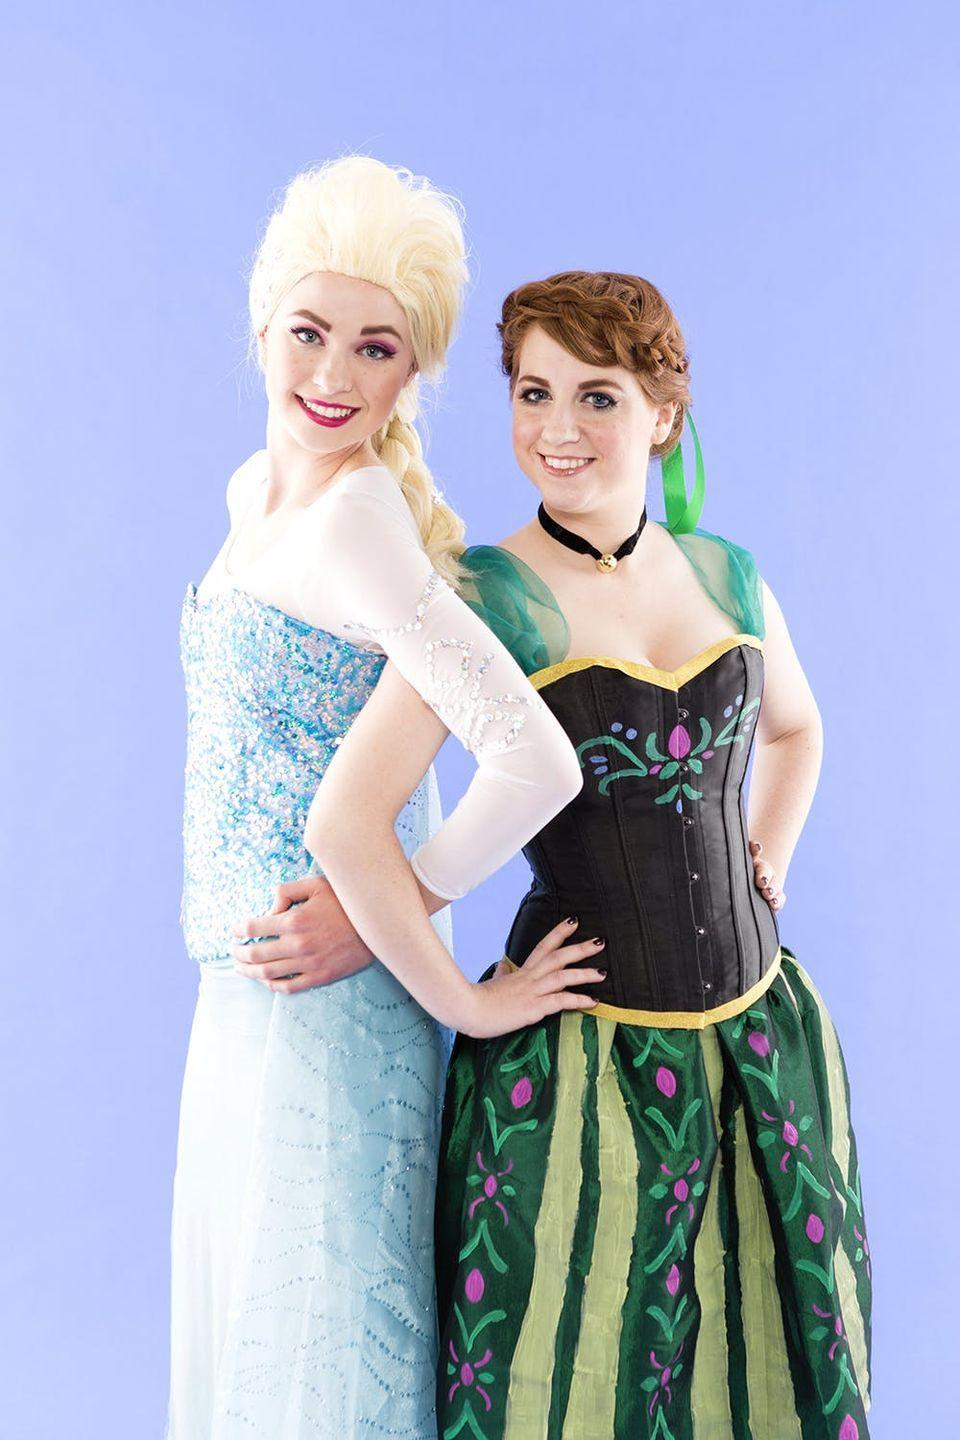 """<p>When it comes to your costume, don't """"let it go"""" this Halloween. Grab your bestie and pull off matching outfits inspired by your favorite Disney film.</p><p><strong>Get the tutorial at <a href=""""https://www.brit.co/frozen-anna-elsa-costume/"""" rel=""""nofollow noopener"""" target=""""_blank"""" data-ylk=""""slk:Brit & Co"""" class=""""link rapid-noclick-resp"""">Brit & Co</a>. </strong></p><p><strong><a class=""""link rapid-noclick-resp"""" href=""""https://www.amazon.com/gp/product/B00IF84XQ6/?tag=syn-yahoo-20&ascsubtag=%5Bartid%7C10050.g.21349110%5Bsrc%7Cyahoo-us"""" rel=""""nofollow noopener"""" target=""""_blank"""" data-ylk=""""slk:SHOP WHITE CORSET"""">SHOP WHITE CORSET</a></strong></p>"""